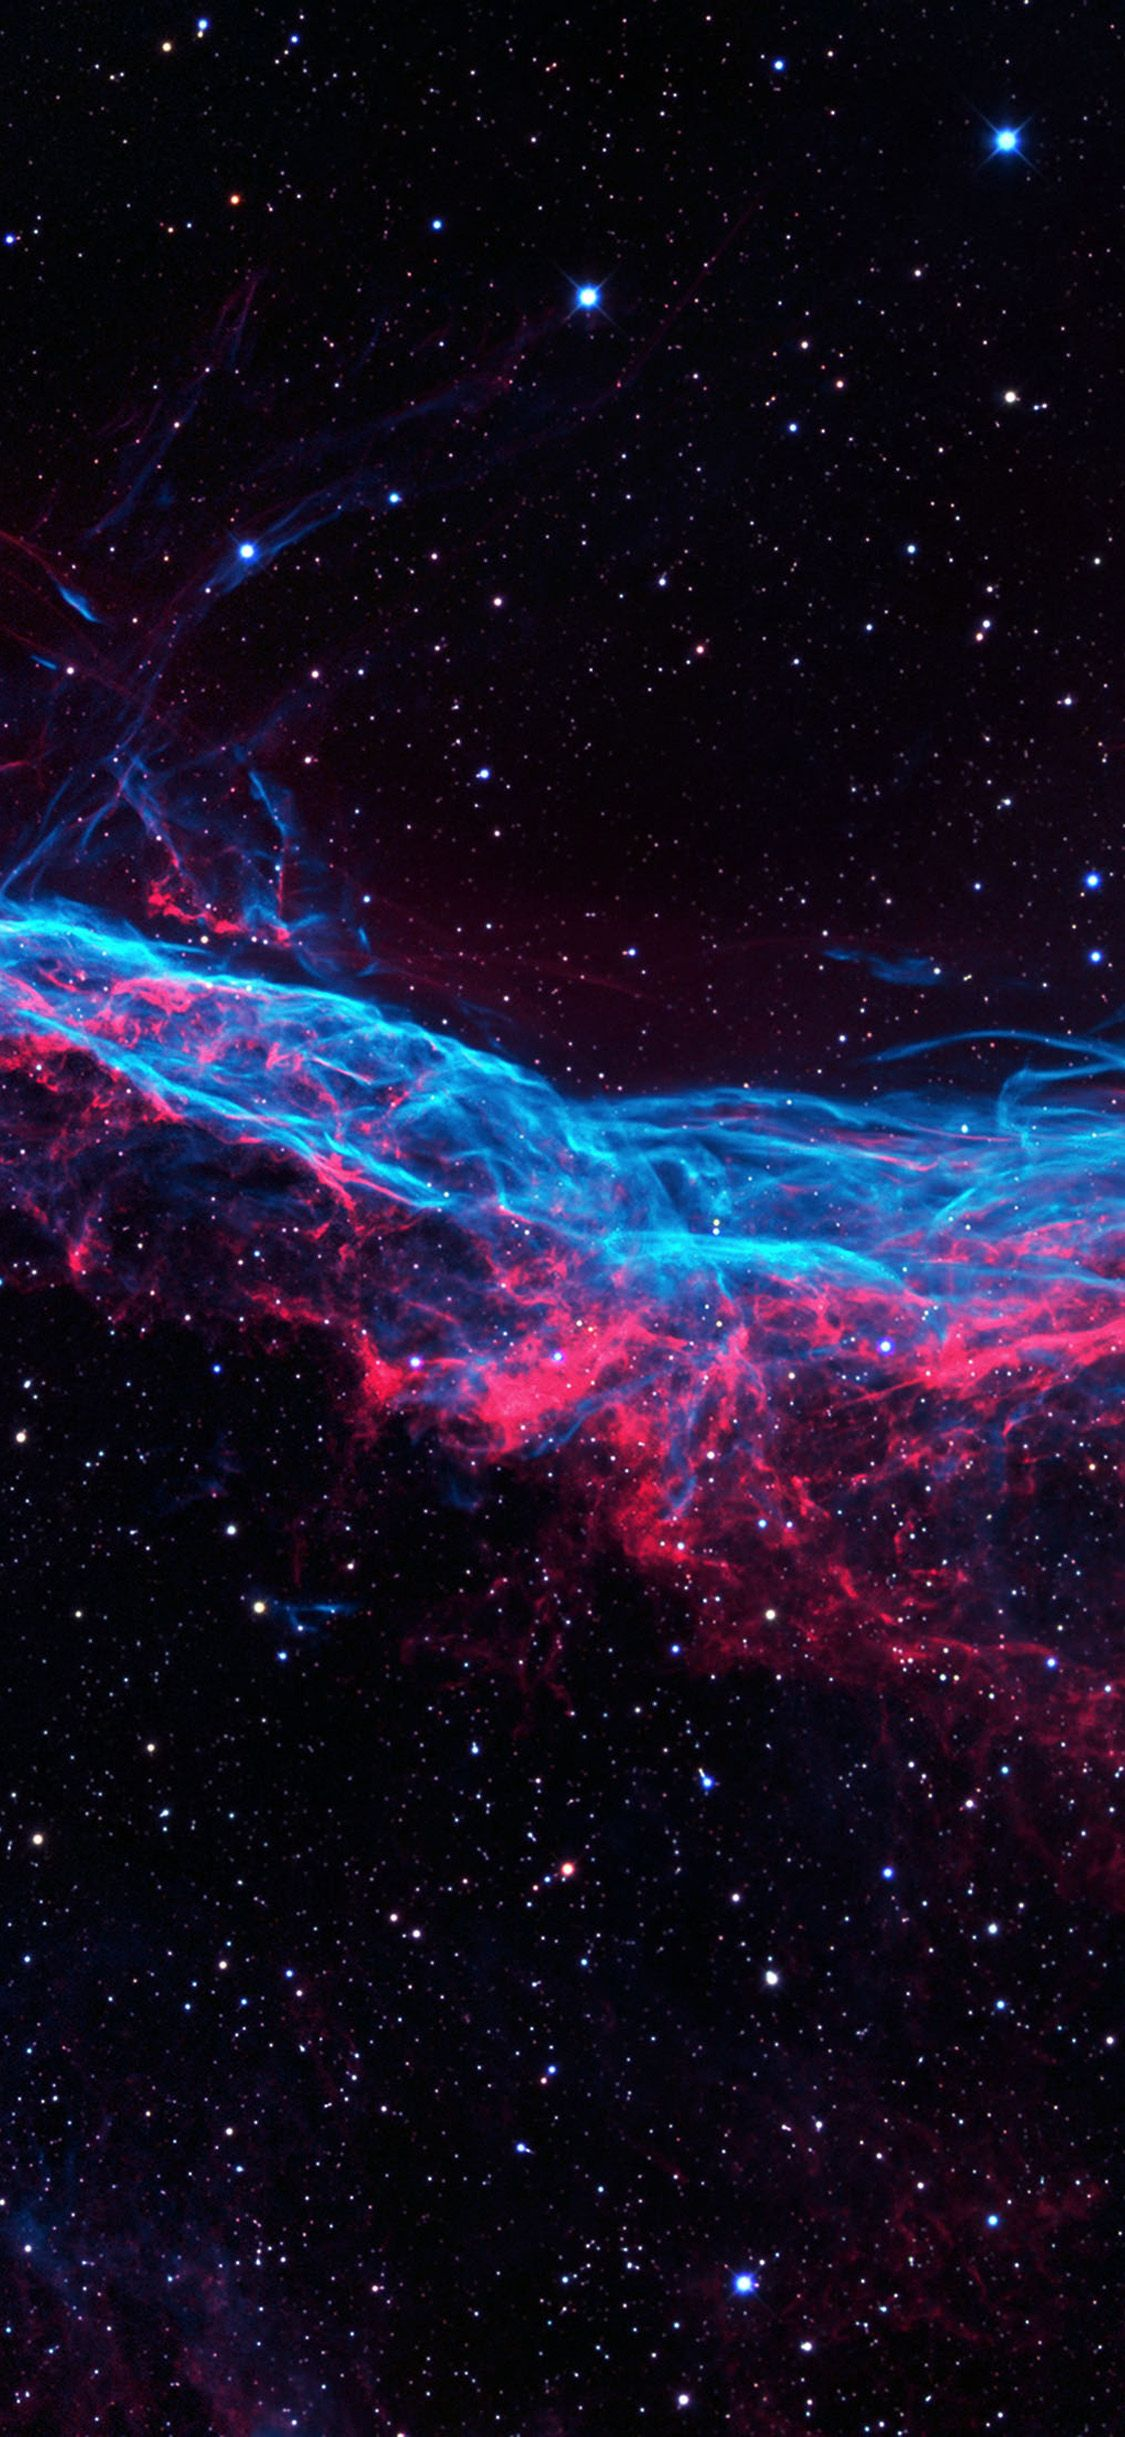 Image for Space Wallpaper Hd Iphone X in 2019 Oneplus